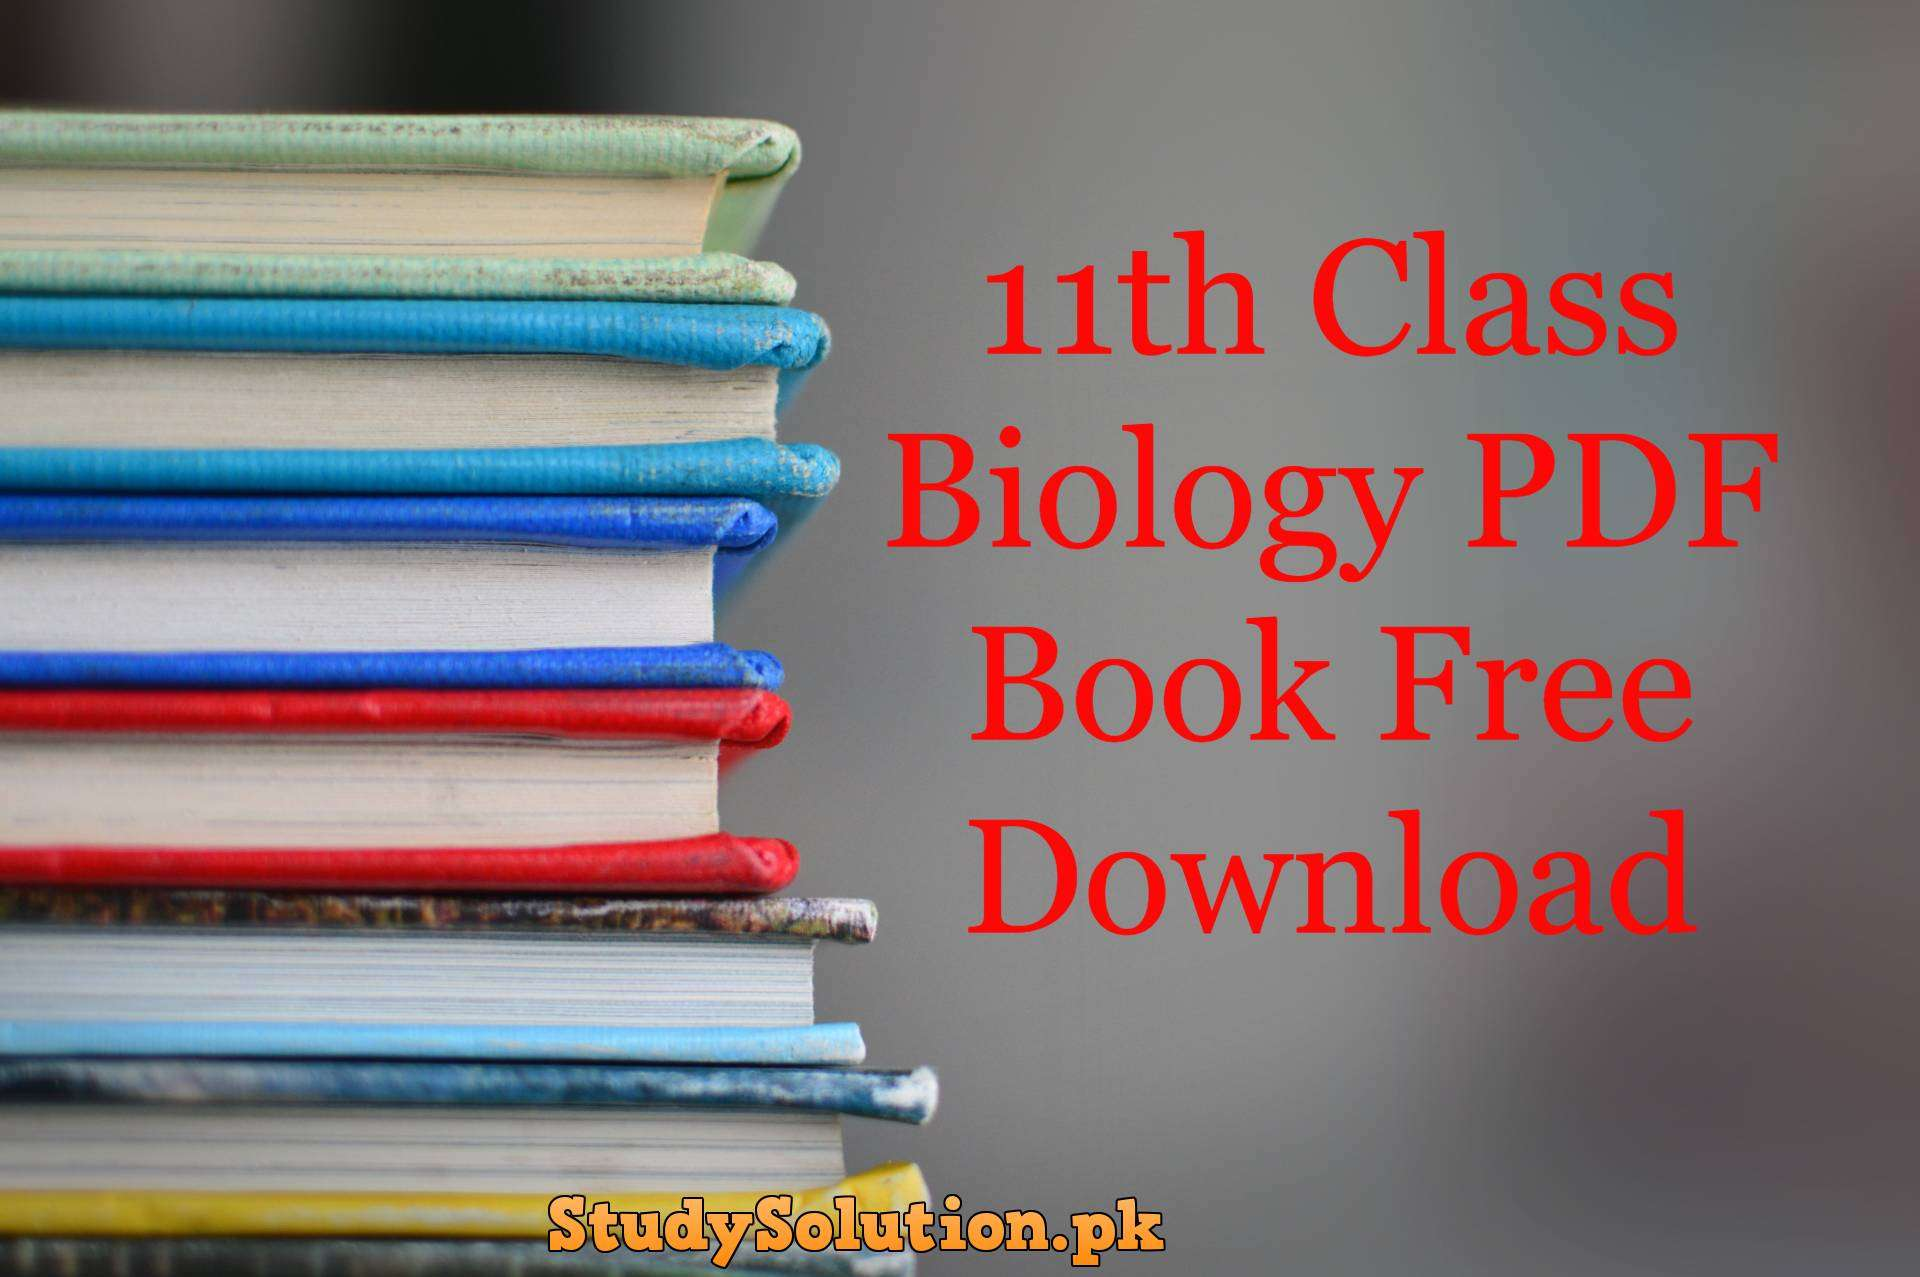 11th Class Biology PDF Book Free Download